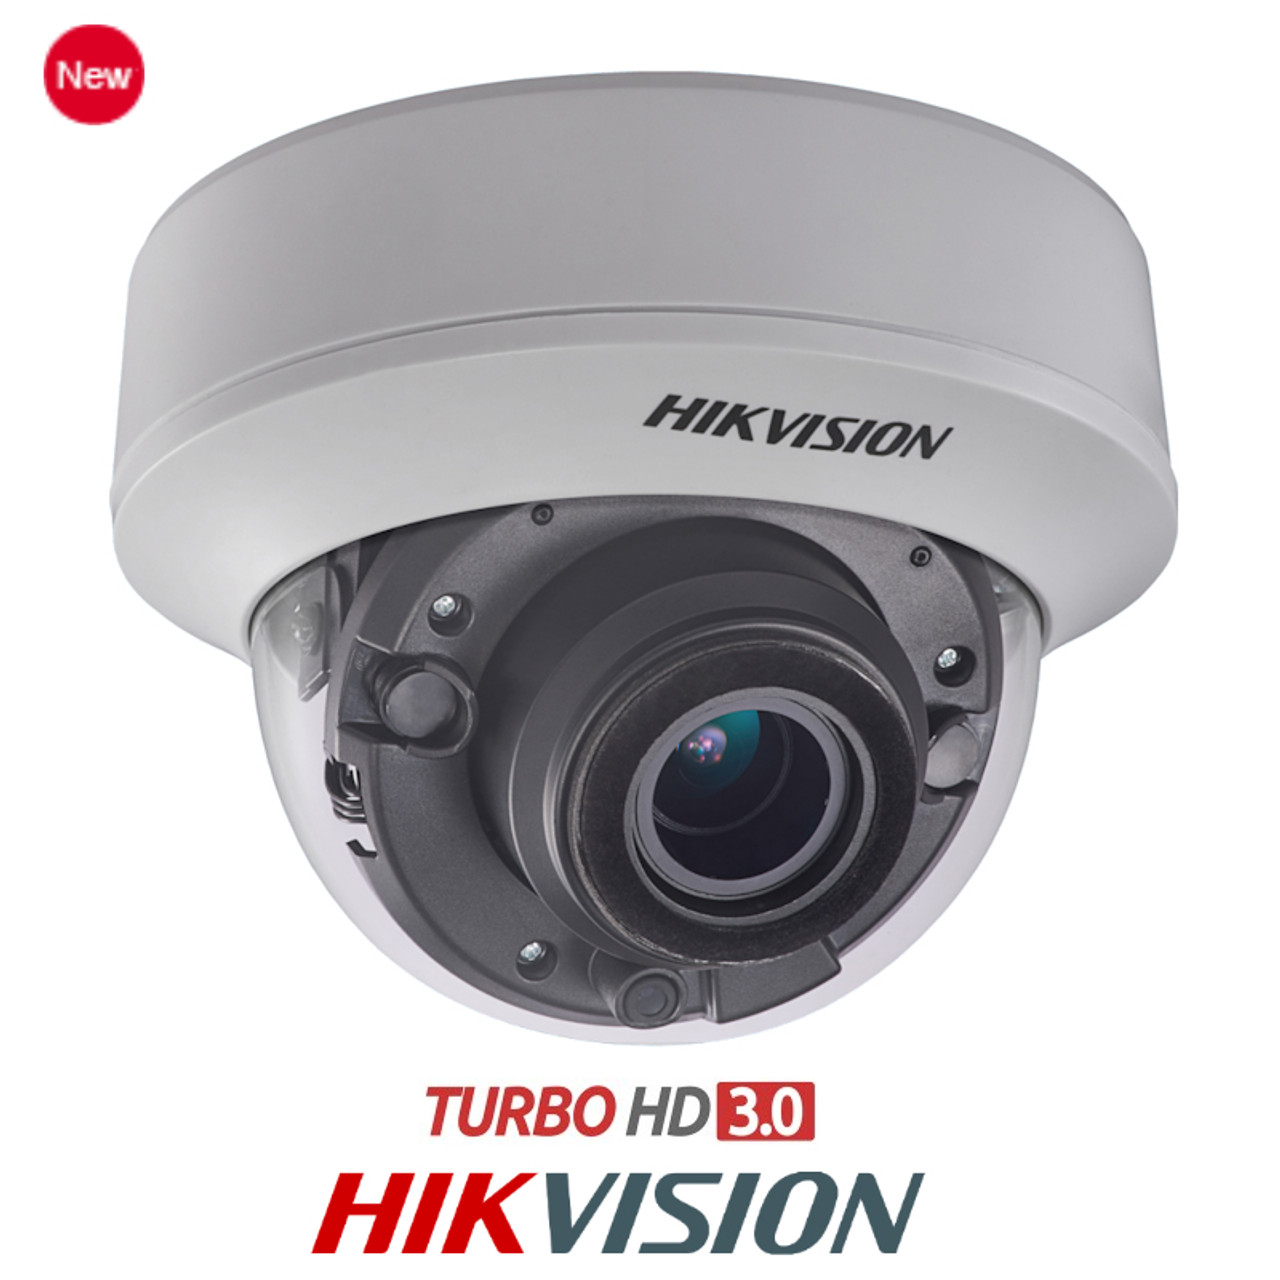 HIKVision Turbo HD 3.0 3MP Motorised Vari-Focal 2.8mm-12mm